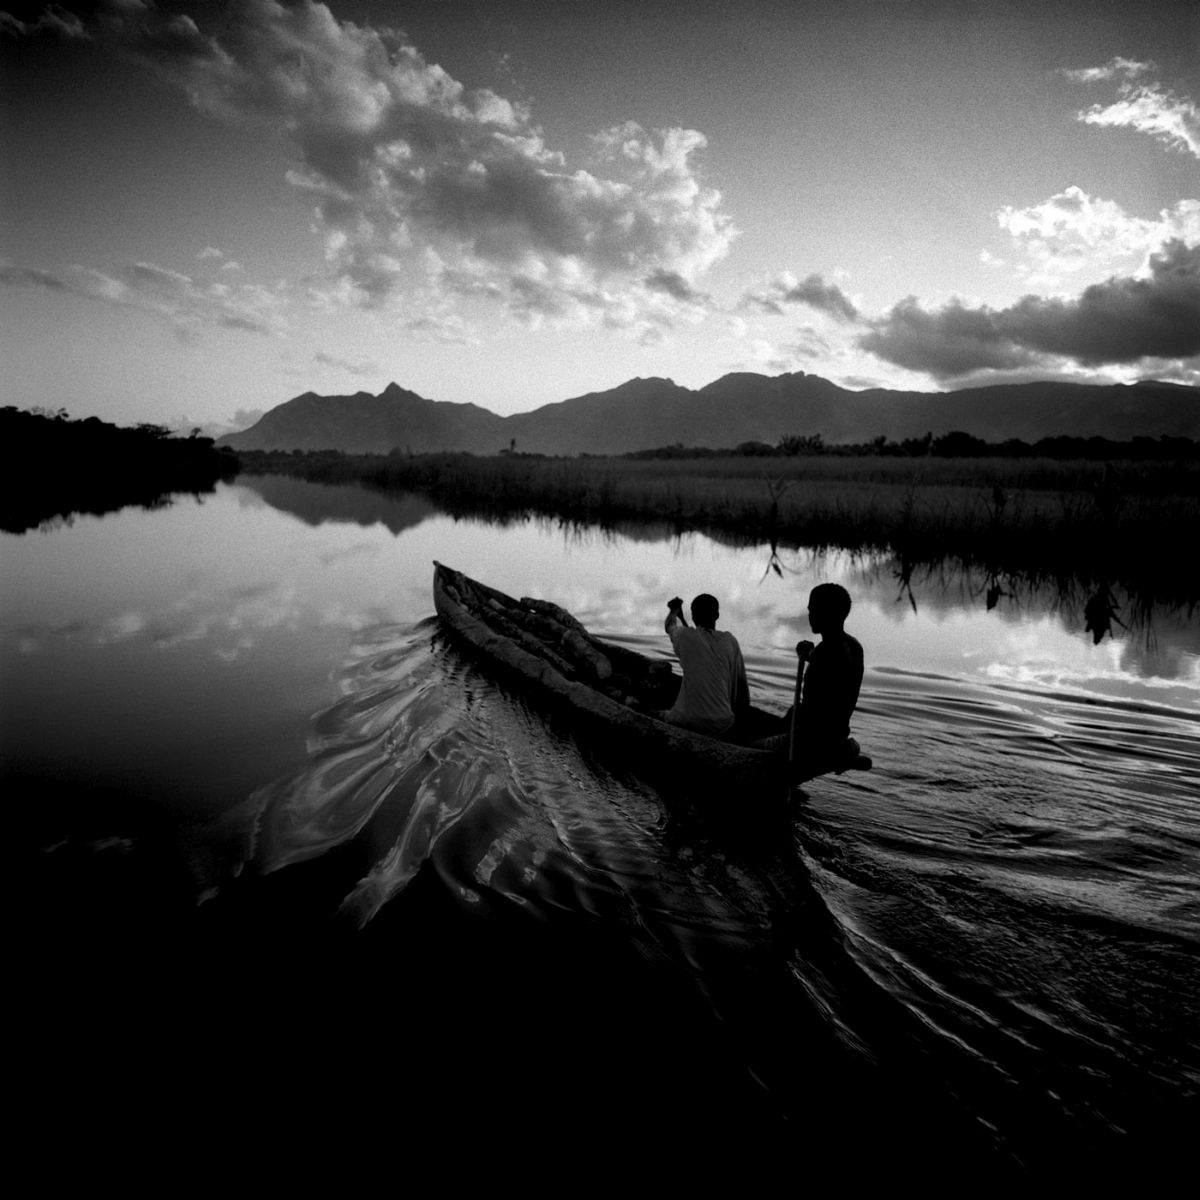 CARNETS DE VOYAGE. CHRIS SIMPSON. Two Men in a Canoe, Madagascar, 1997. Archival pigment print.